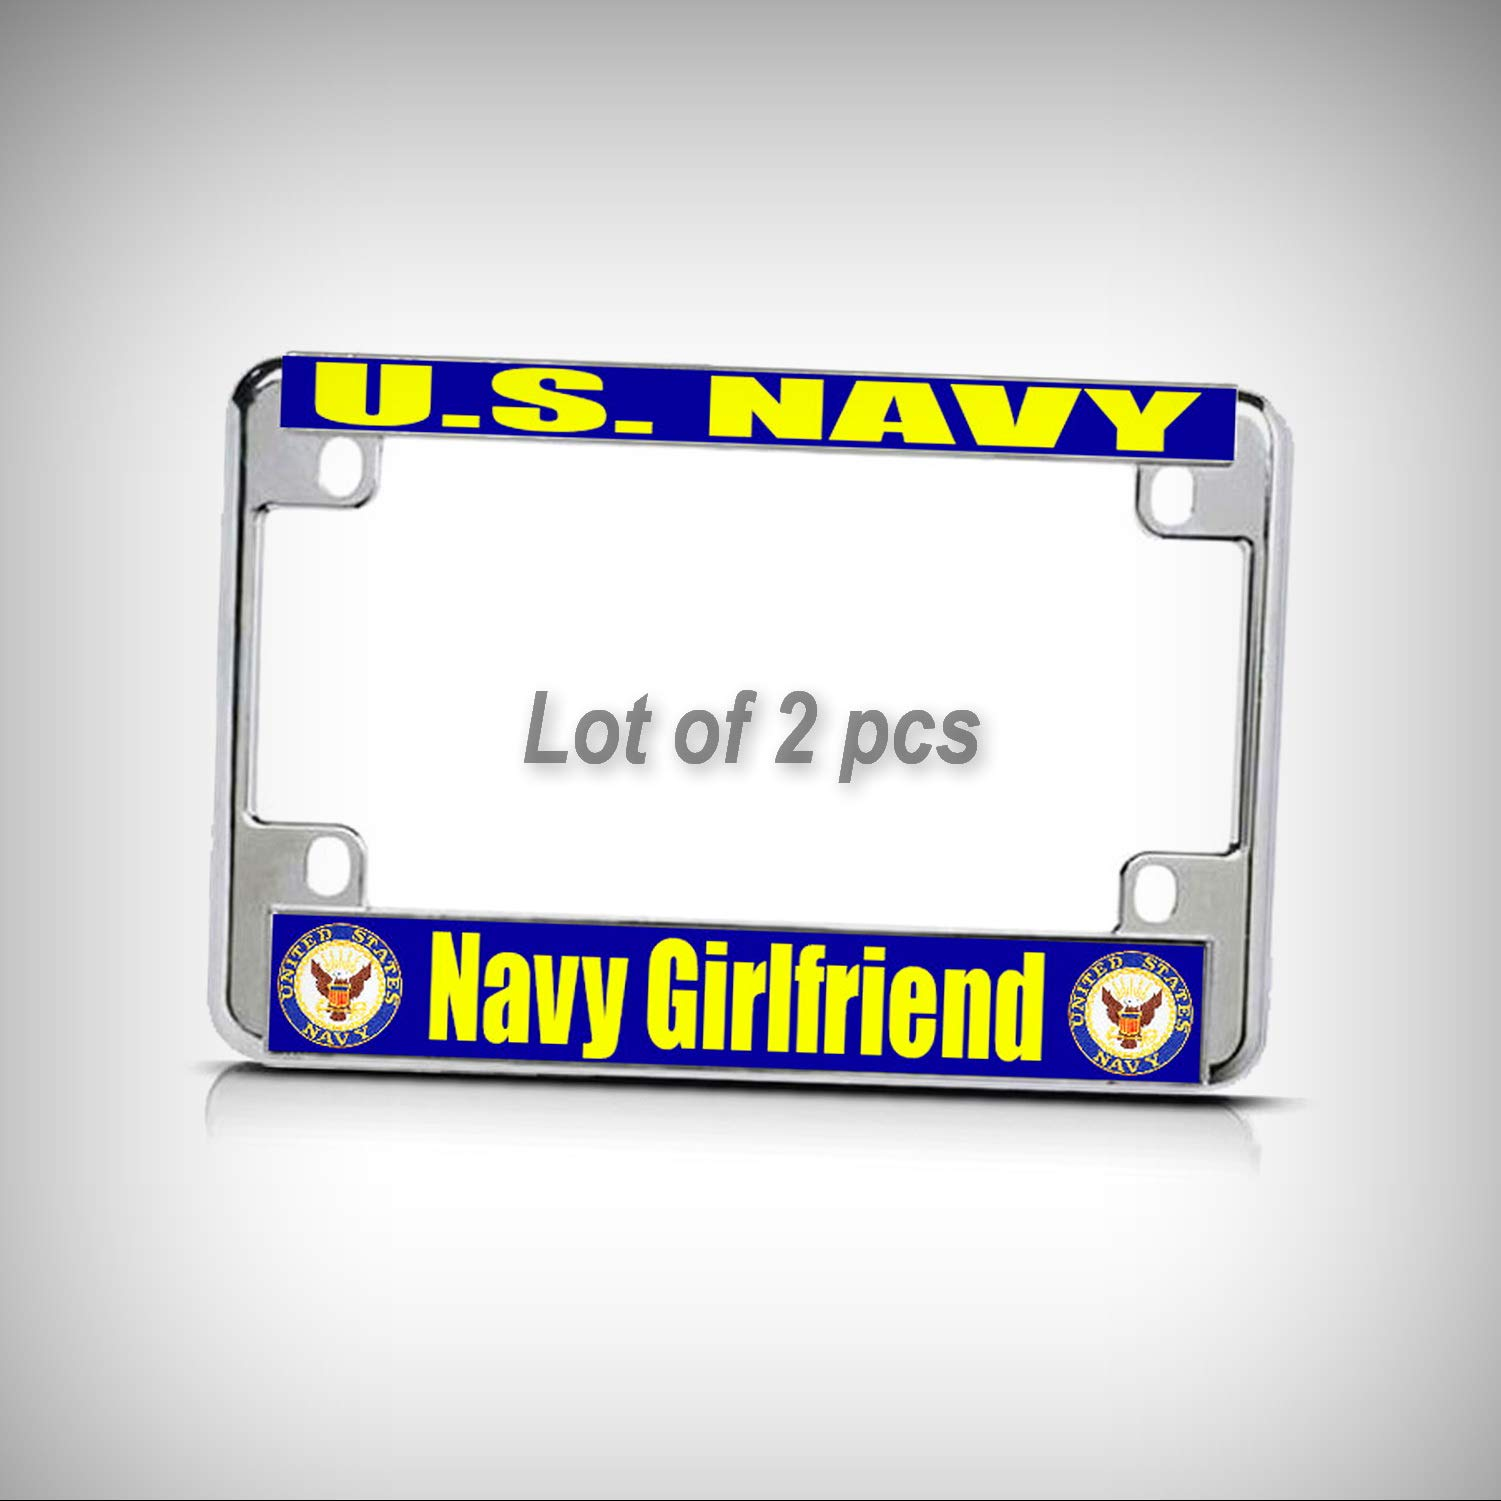 Set of 2 Pcs - U.S. Navy Navy Girlfriend Chrome Metal Bike Motorcycle Tag Holder License Plate Frame Decorative Border